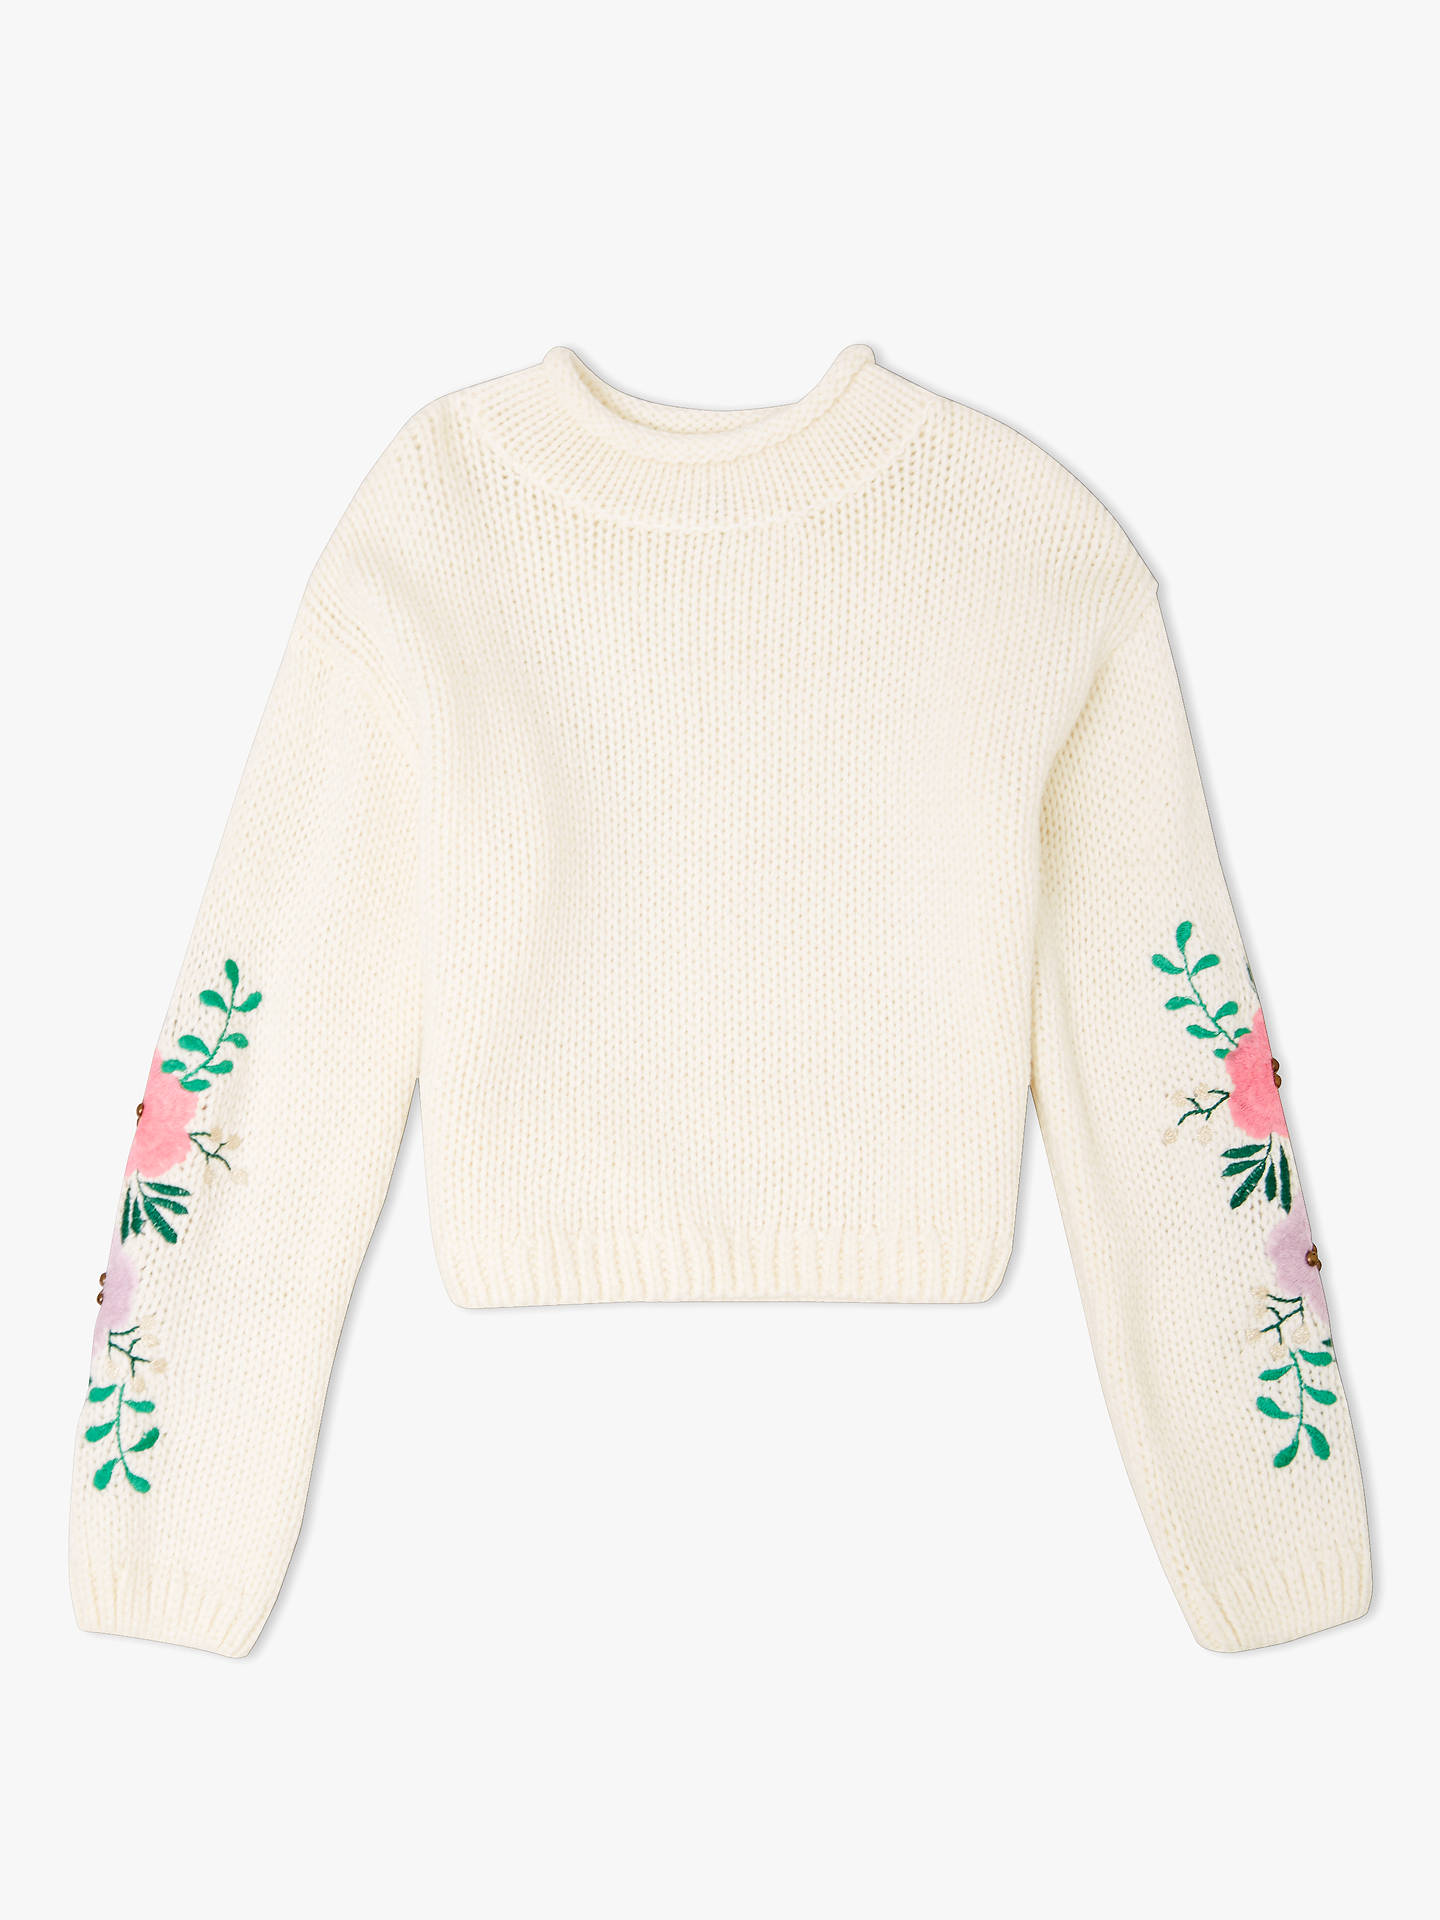 Buy John Lewis & Partners Girls' Floral Embroidered Knitted Jumper, Cream, 8 years Online at johnlewis.com